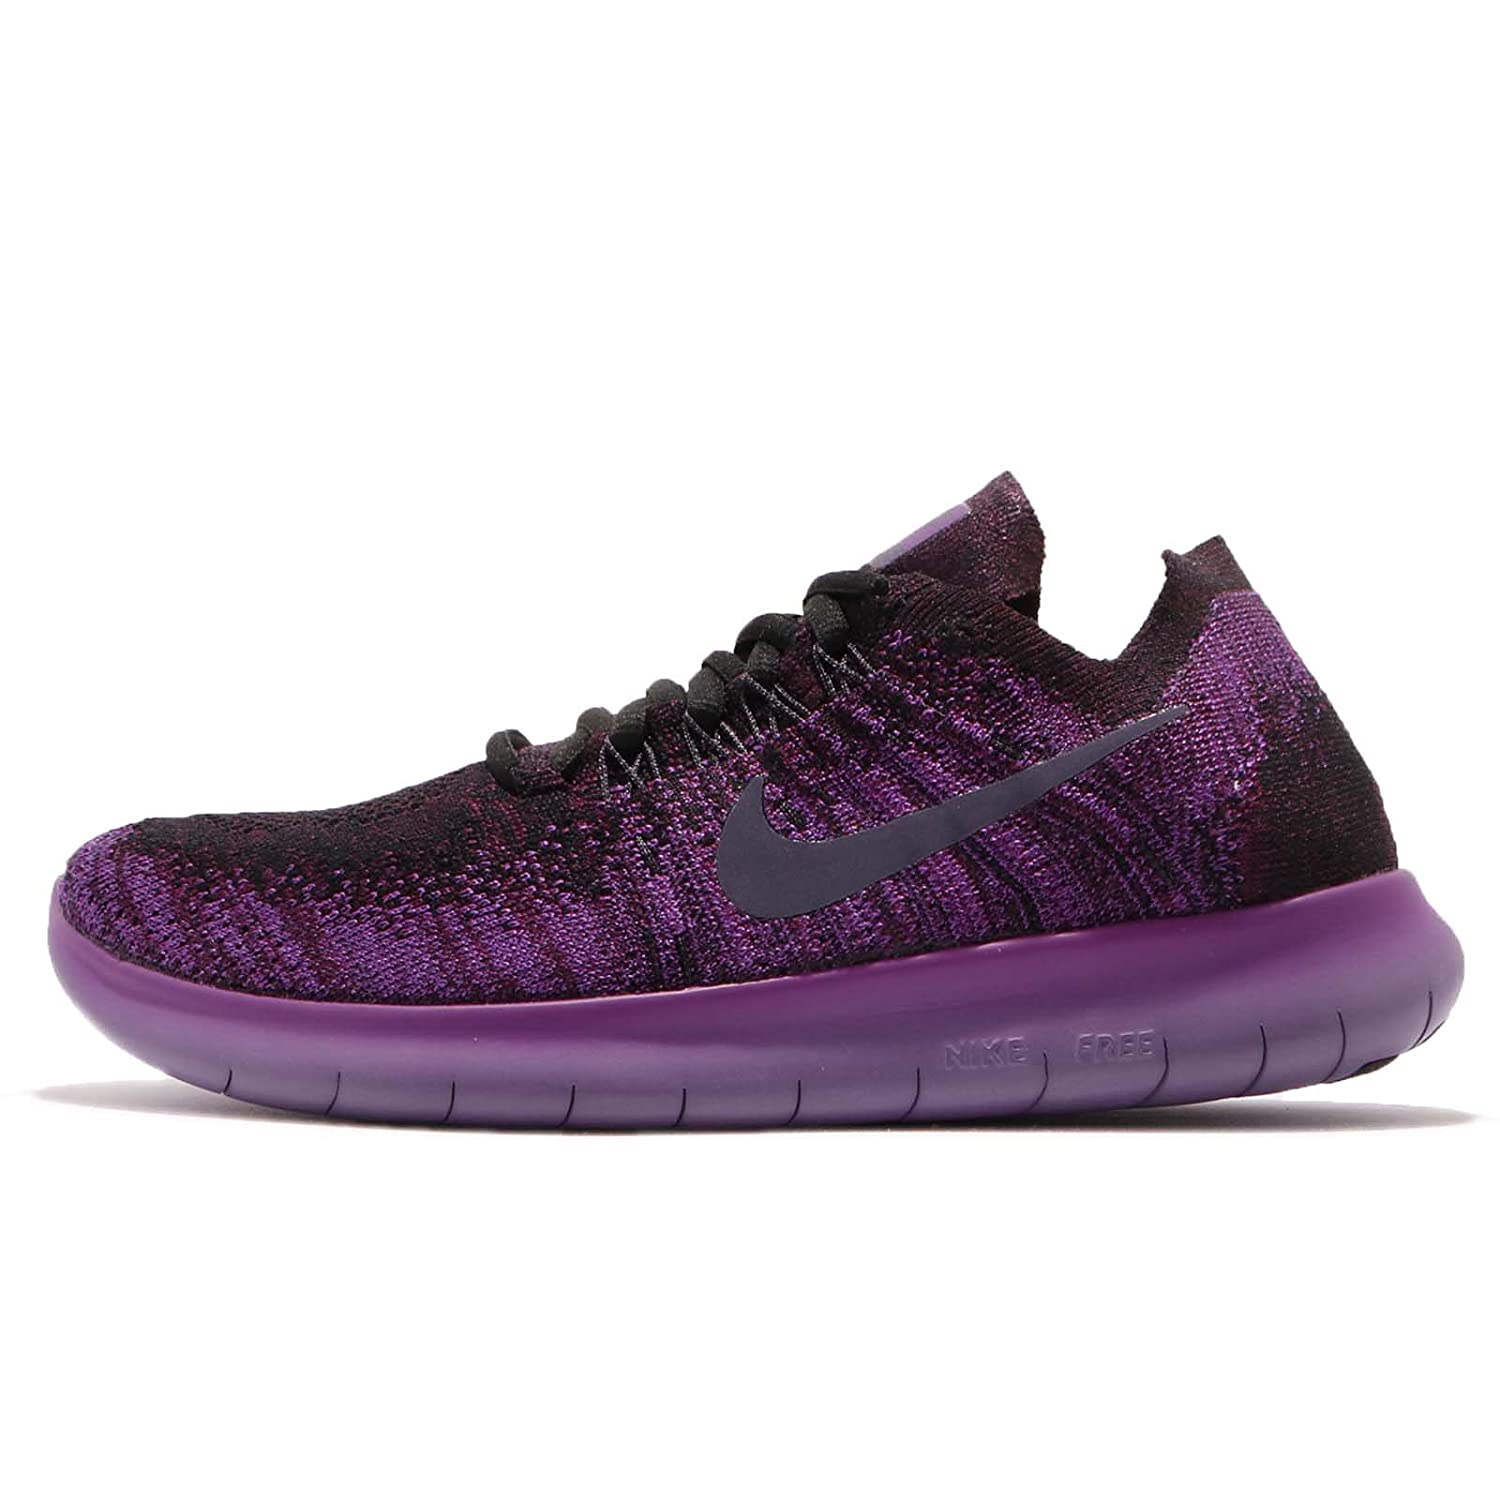 NIKE Women's Free RN Flyknit 2017 Running Shoe B076V434G2 7.5 B(M) US|Black/Dark Raisin-deadly Pink